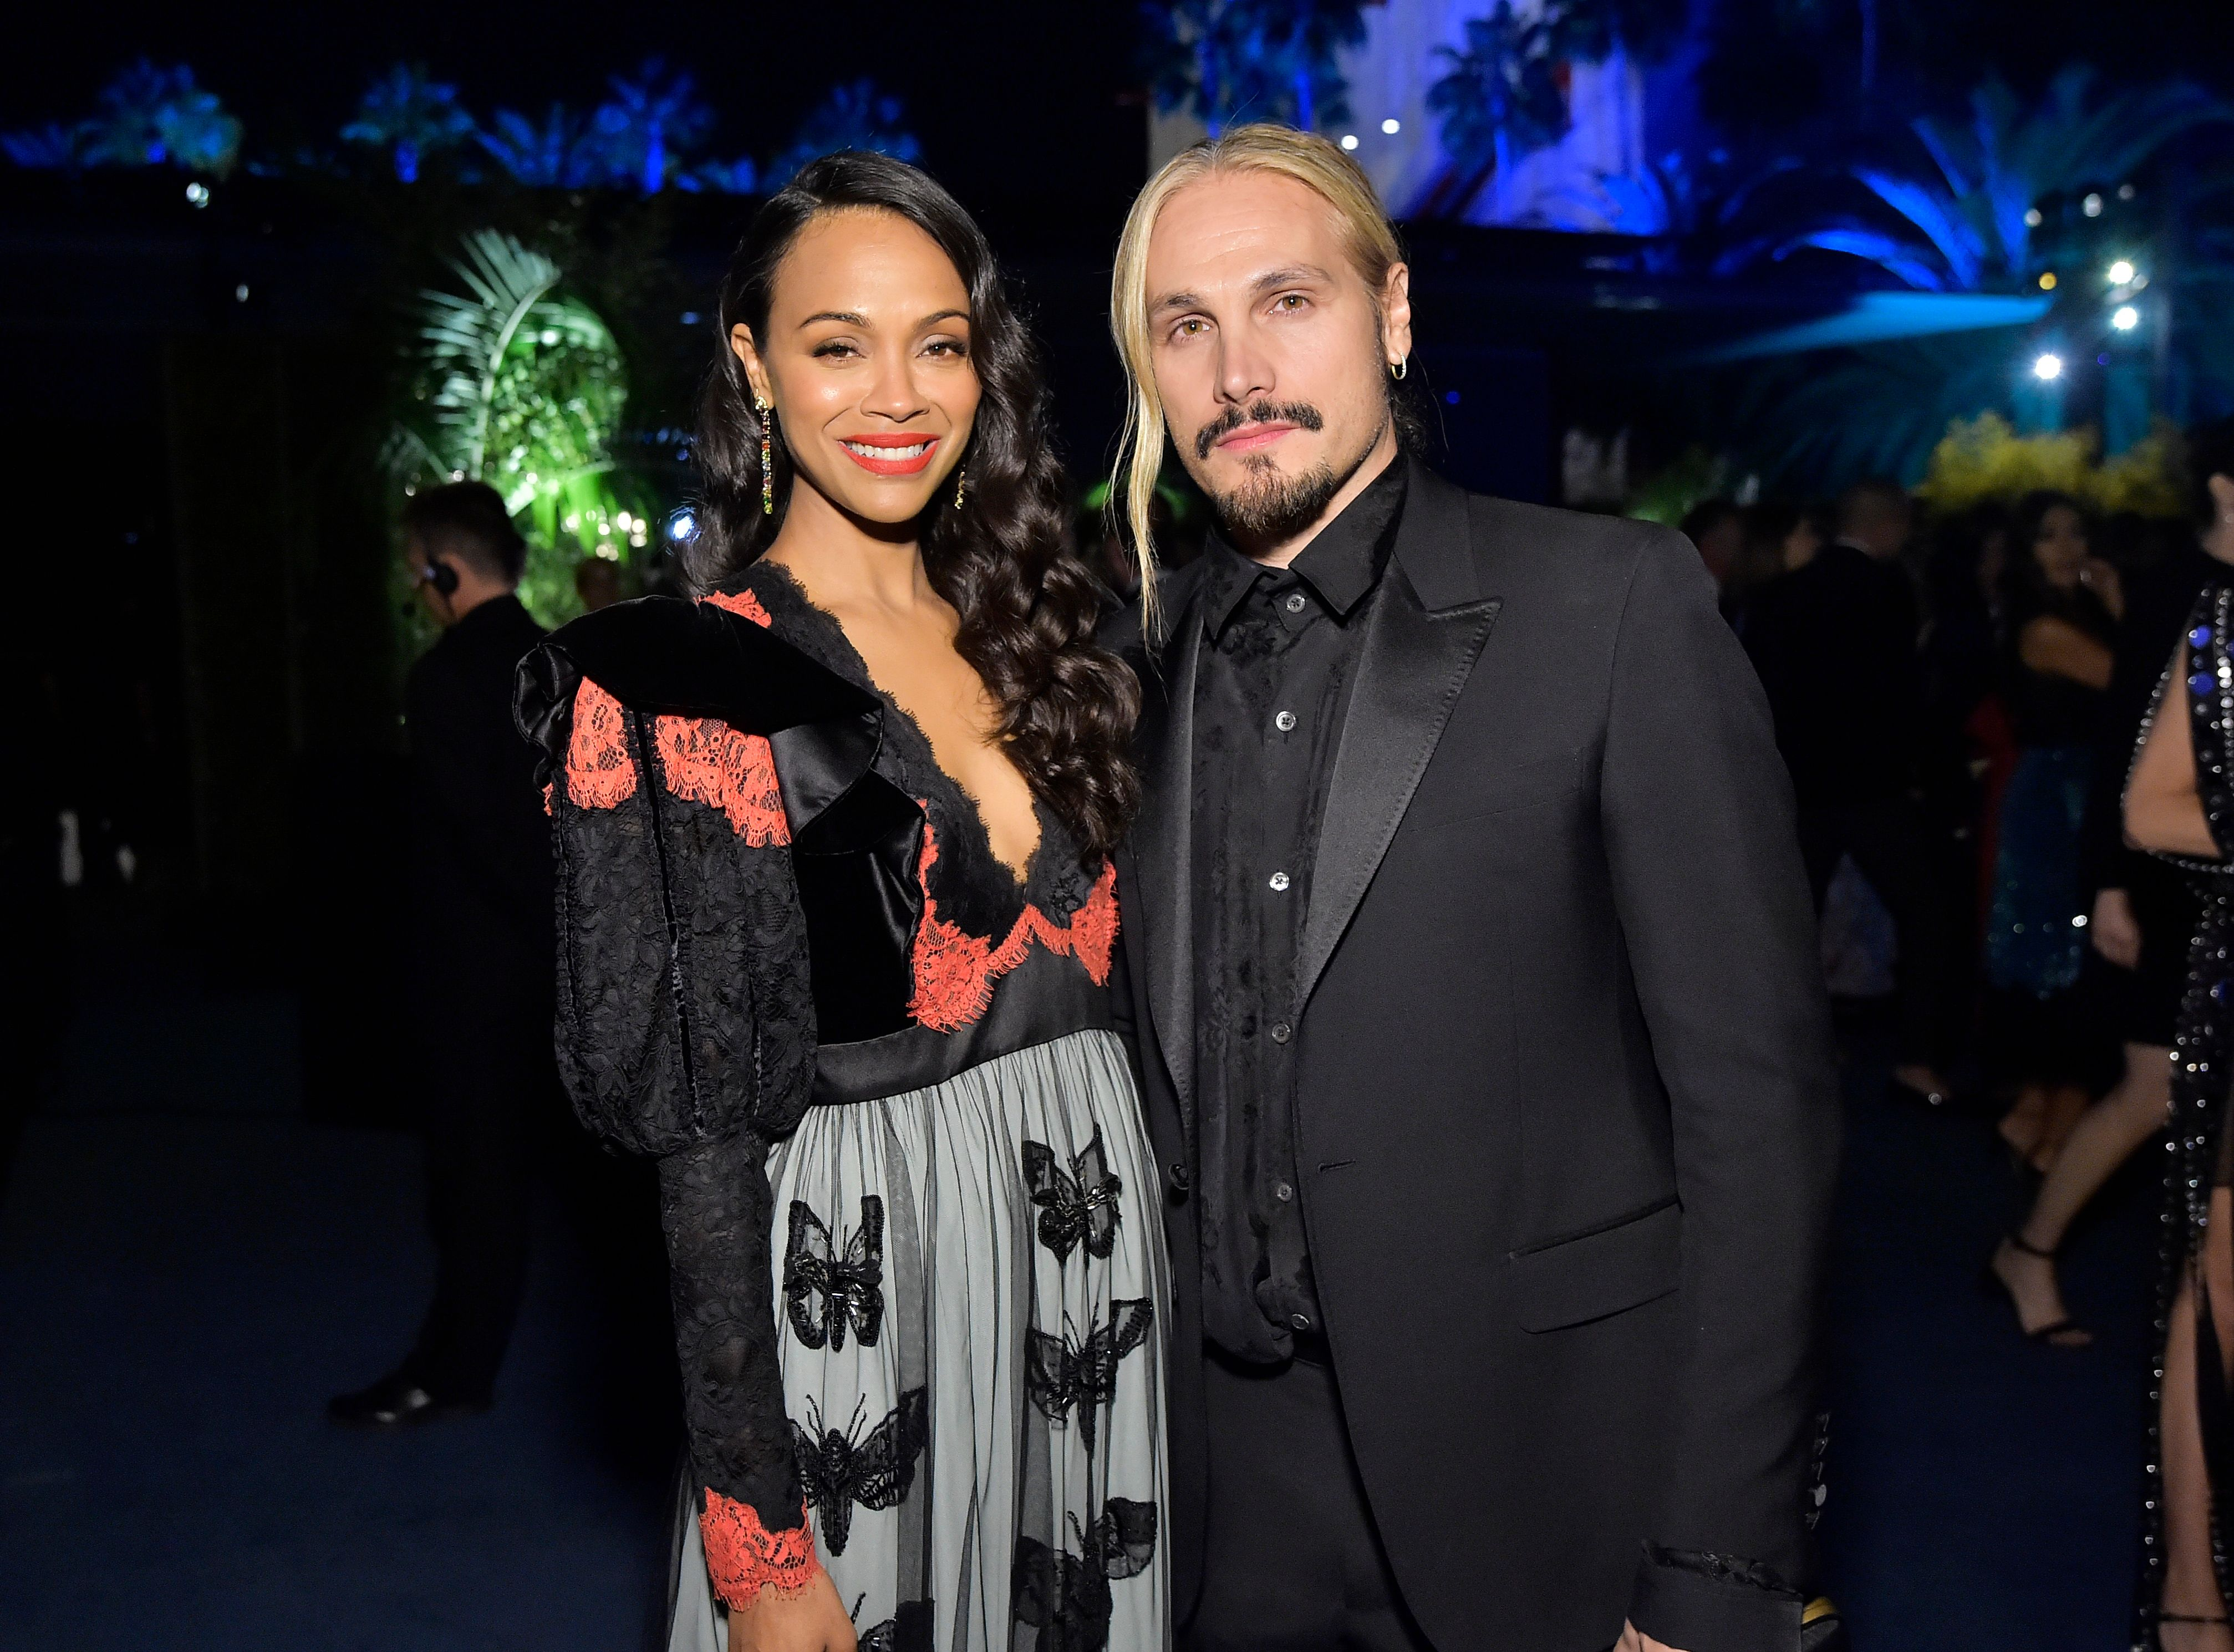 Zoe Saldana and Marco Perego at the 2019 LACMA Art + Film Gala Presented By Gucci at LACMA on November 02, 2019 | Photo: Getty Images